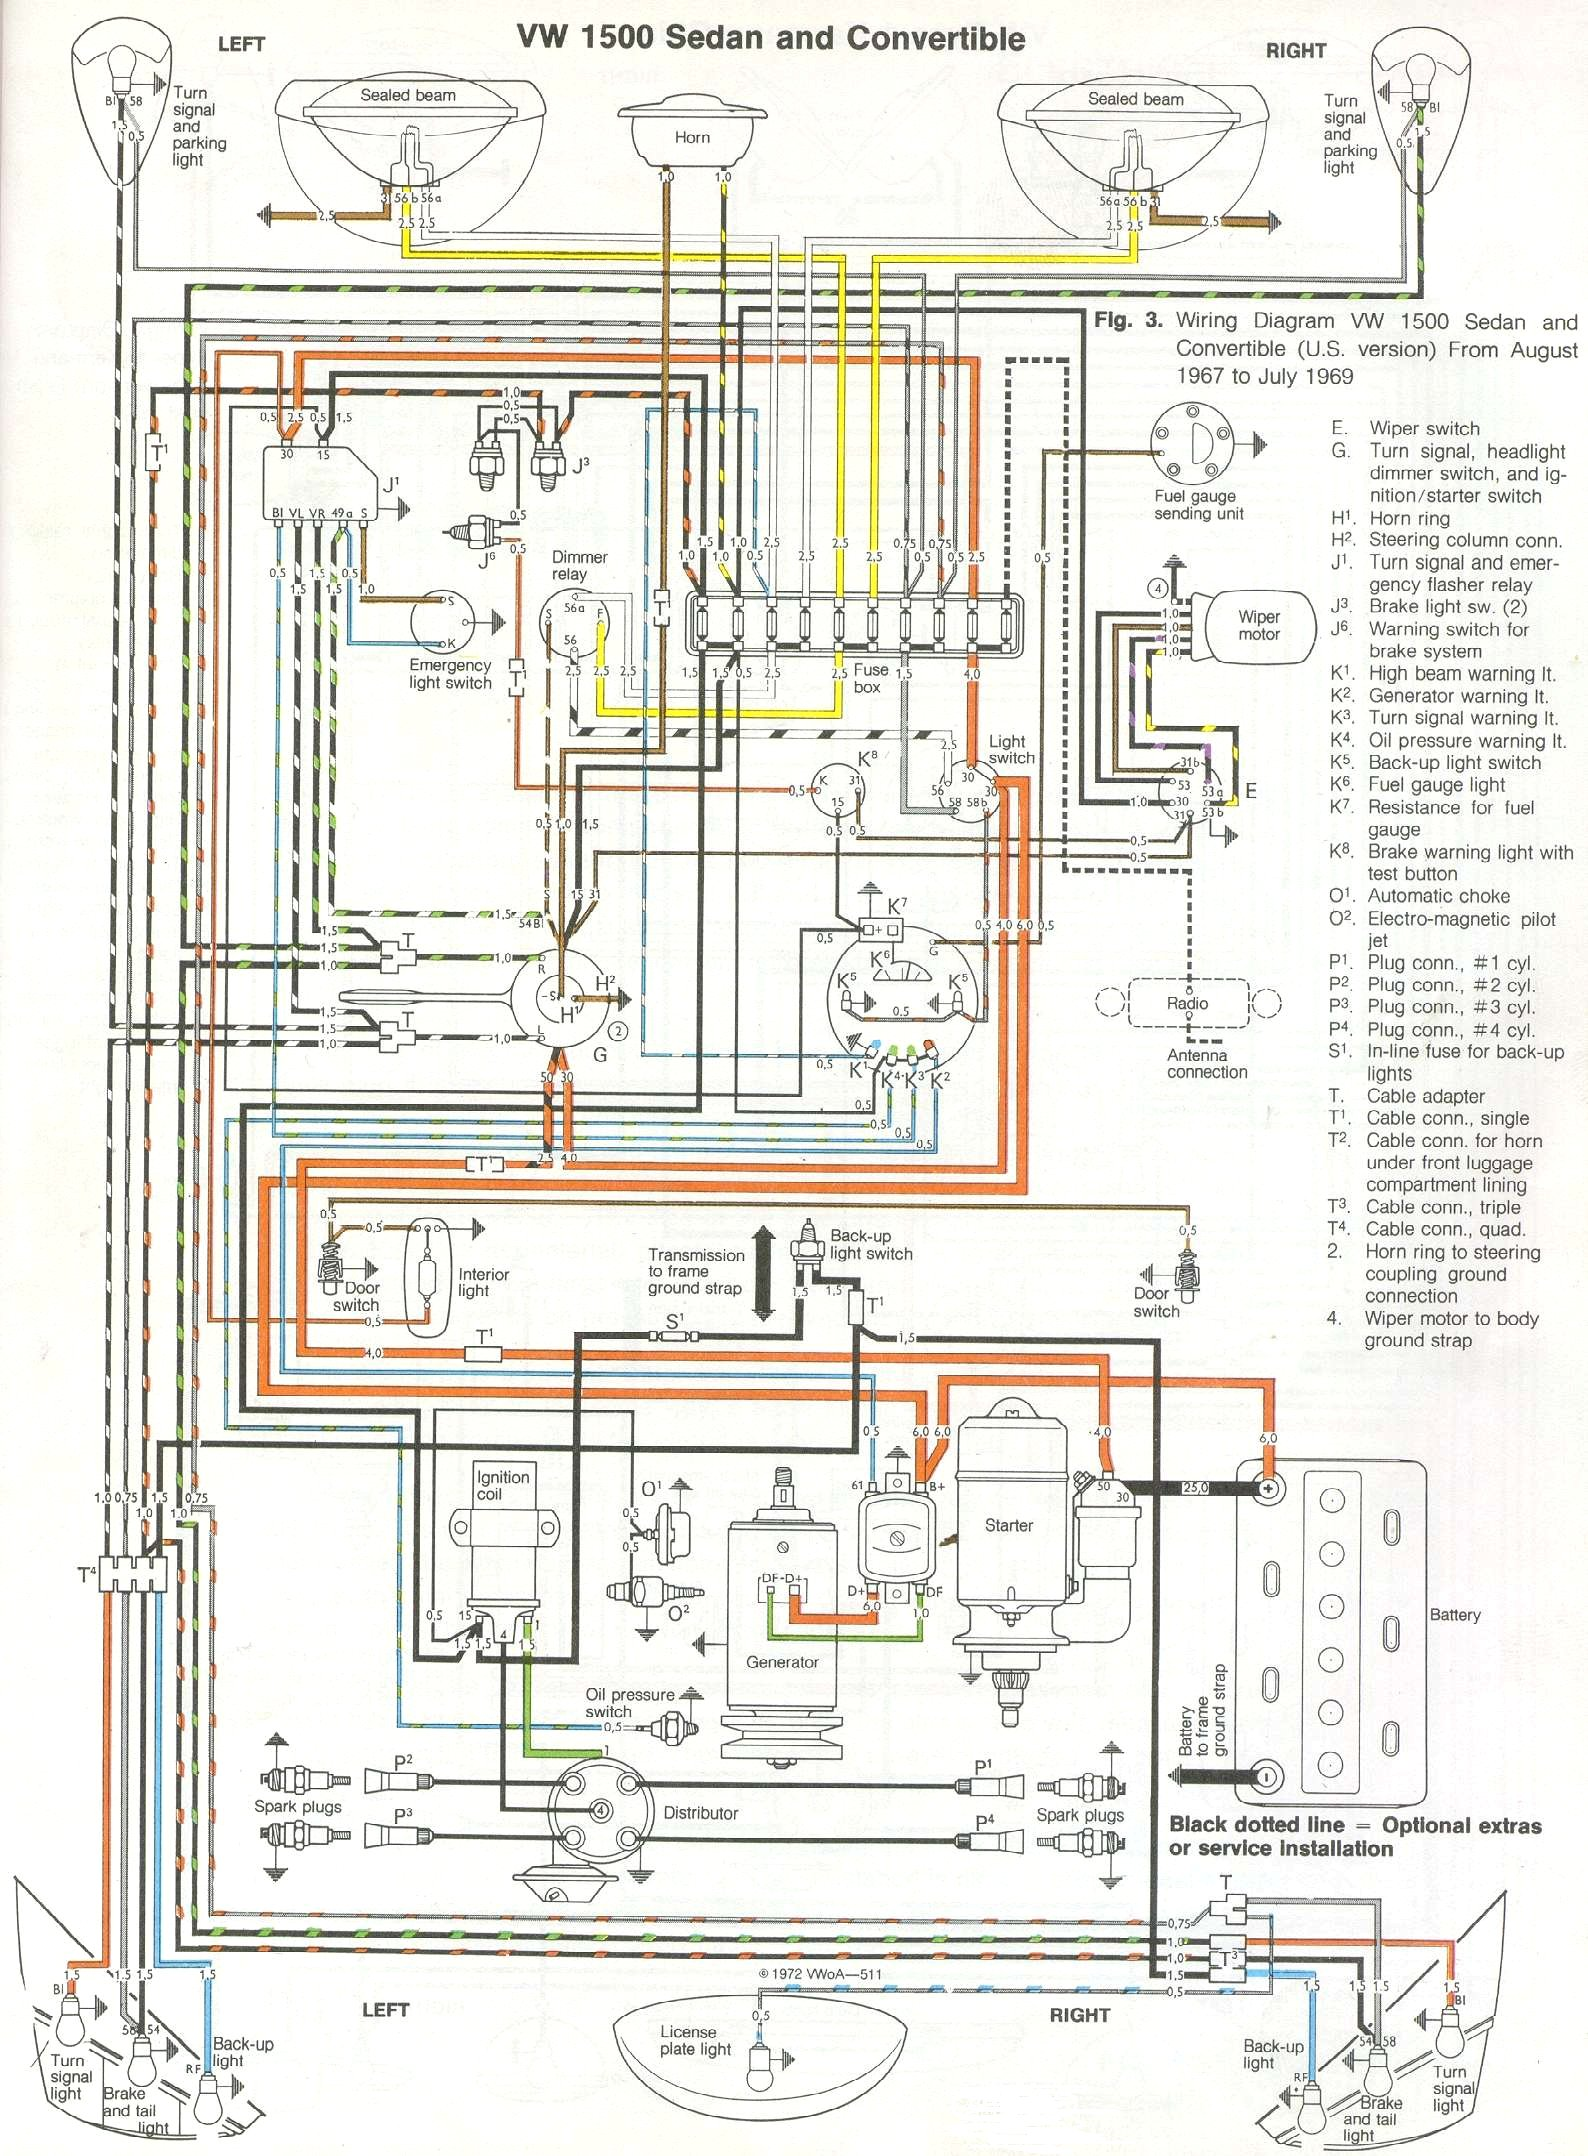 Amc Amx Wiring Diagram Best Library 69 Road Runner Schematic 1972 Volkswagen Beetle For You Rh 1 17 5 Carrera Rennwelt De 1969